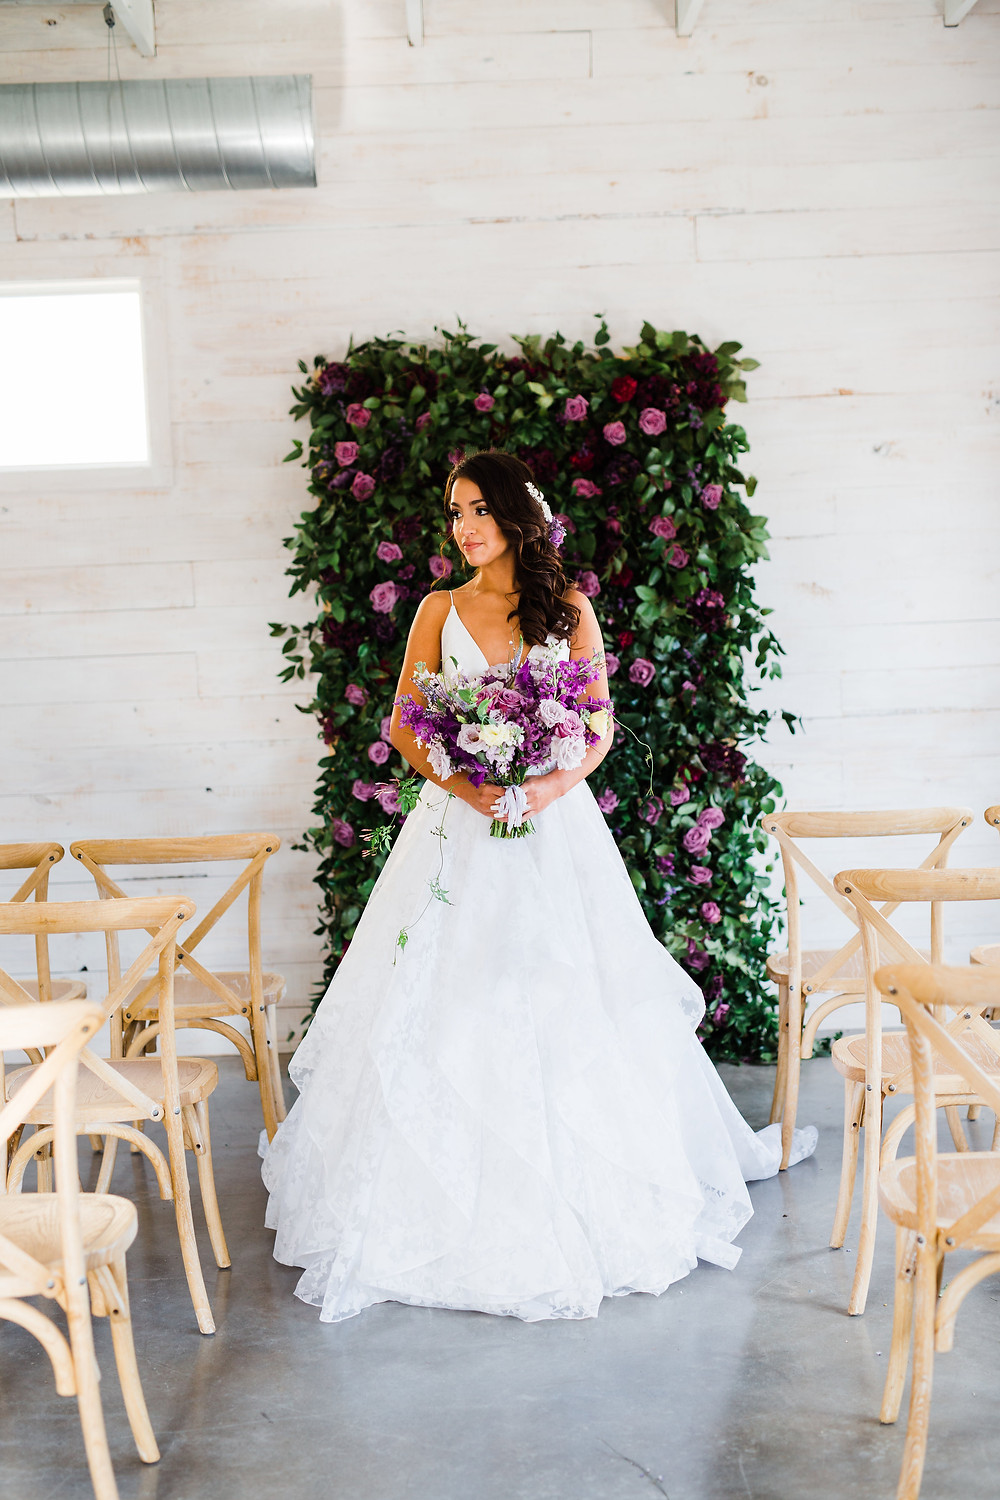 Lauren Crose Photography - Flowers by Flower + Ink Designs